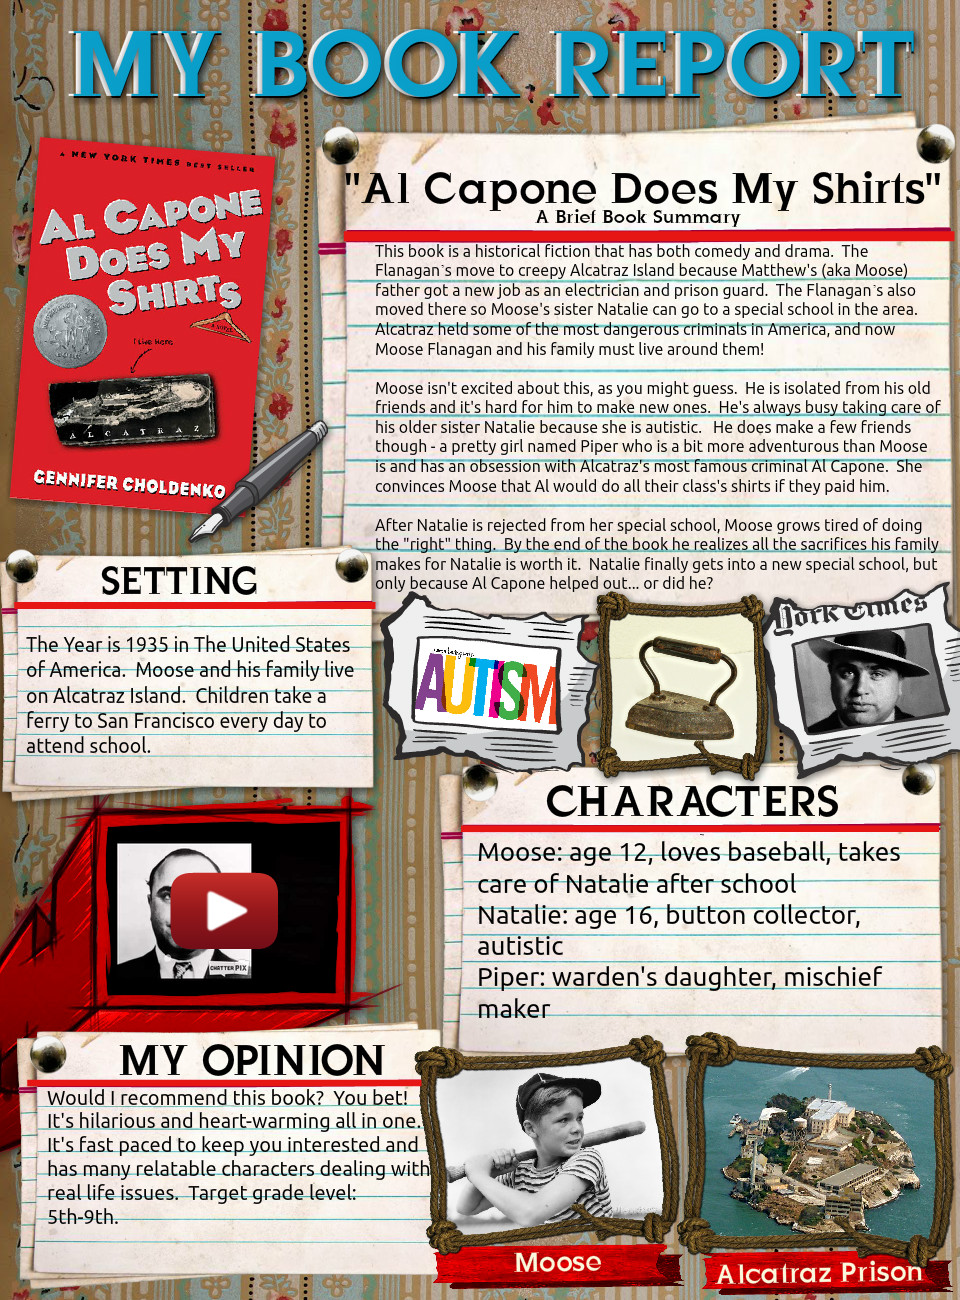 [2015] Victoria Baker: Al Capone Does My Shirts